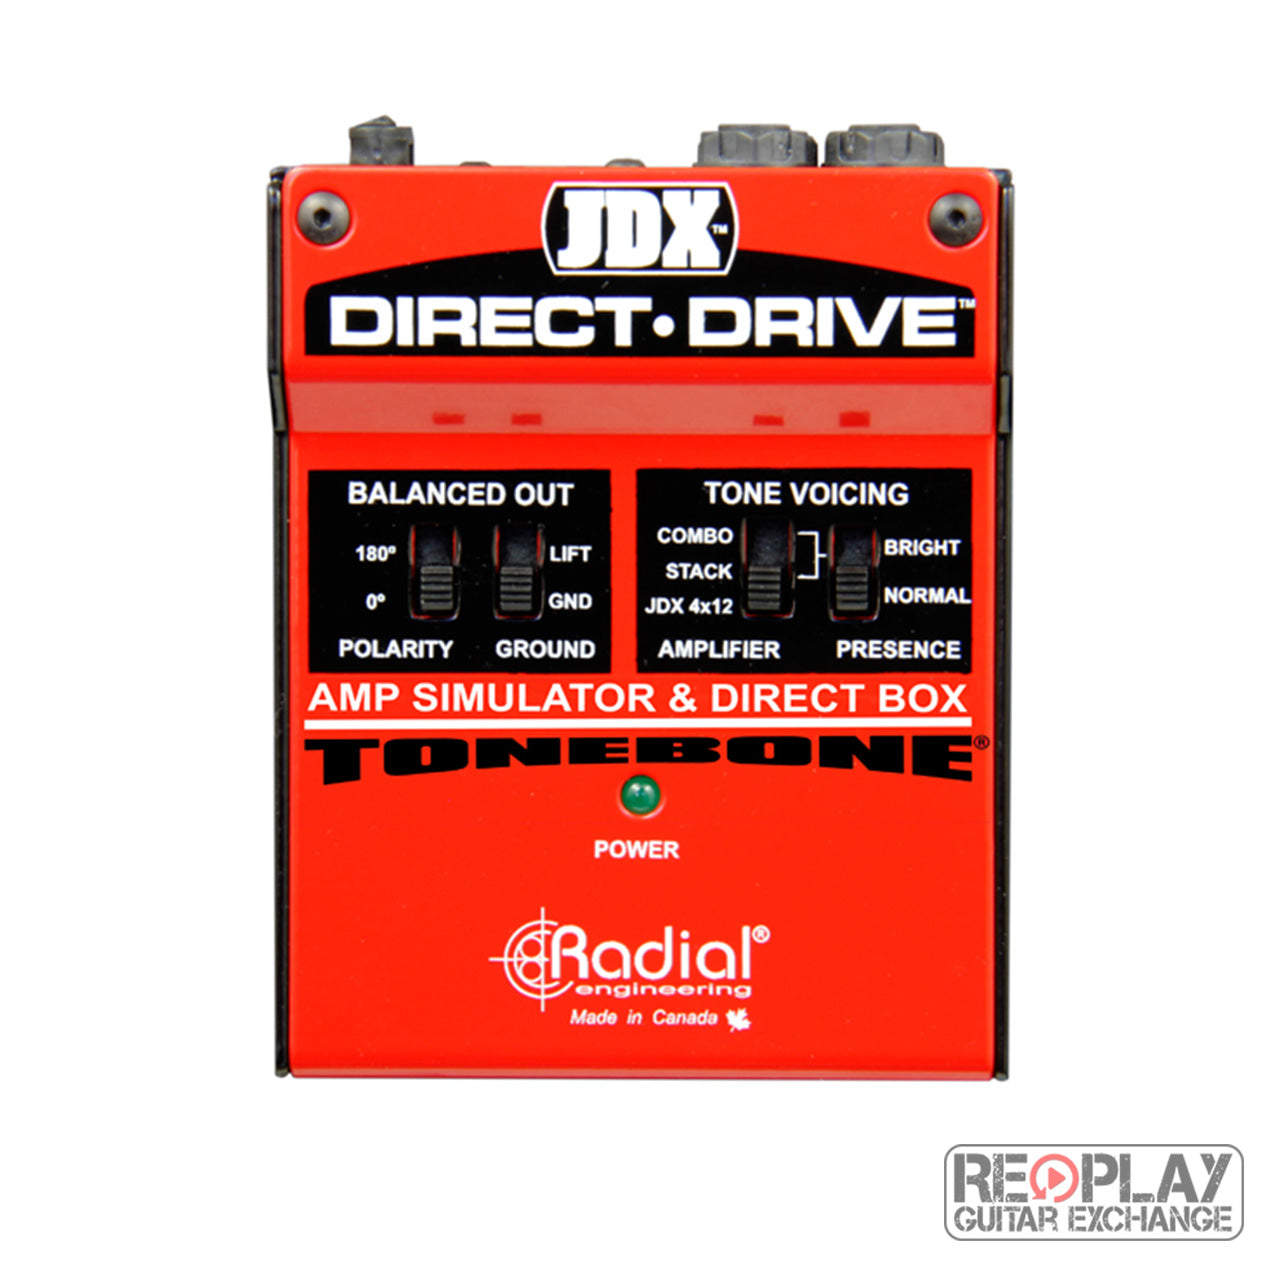 Radial JDX Direct Drive amp simulator and DI